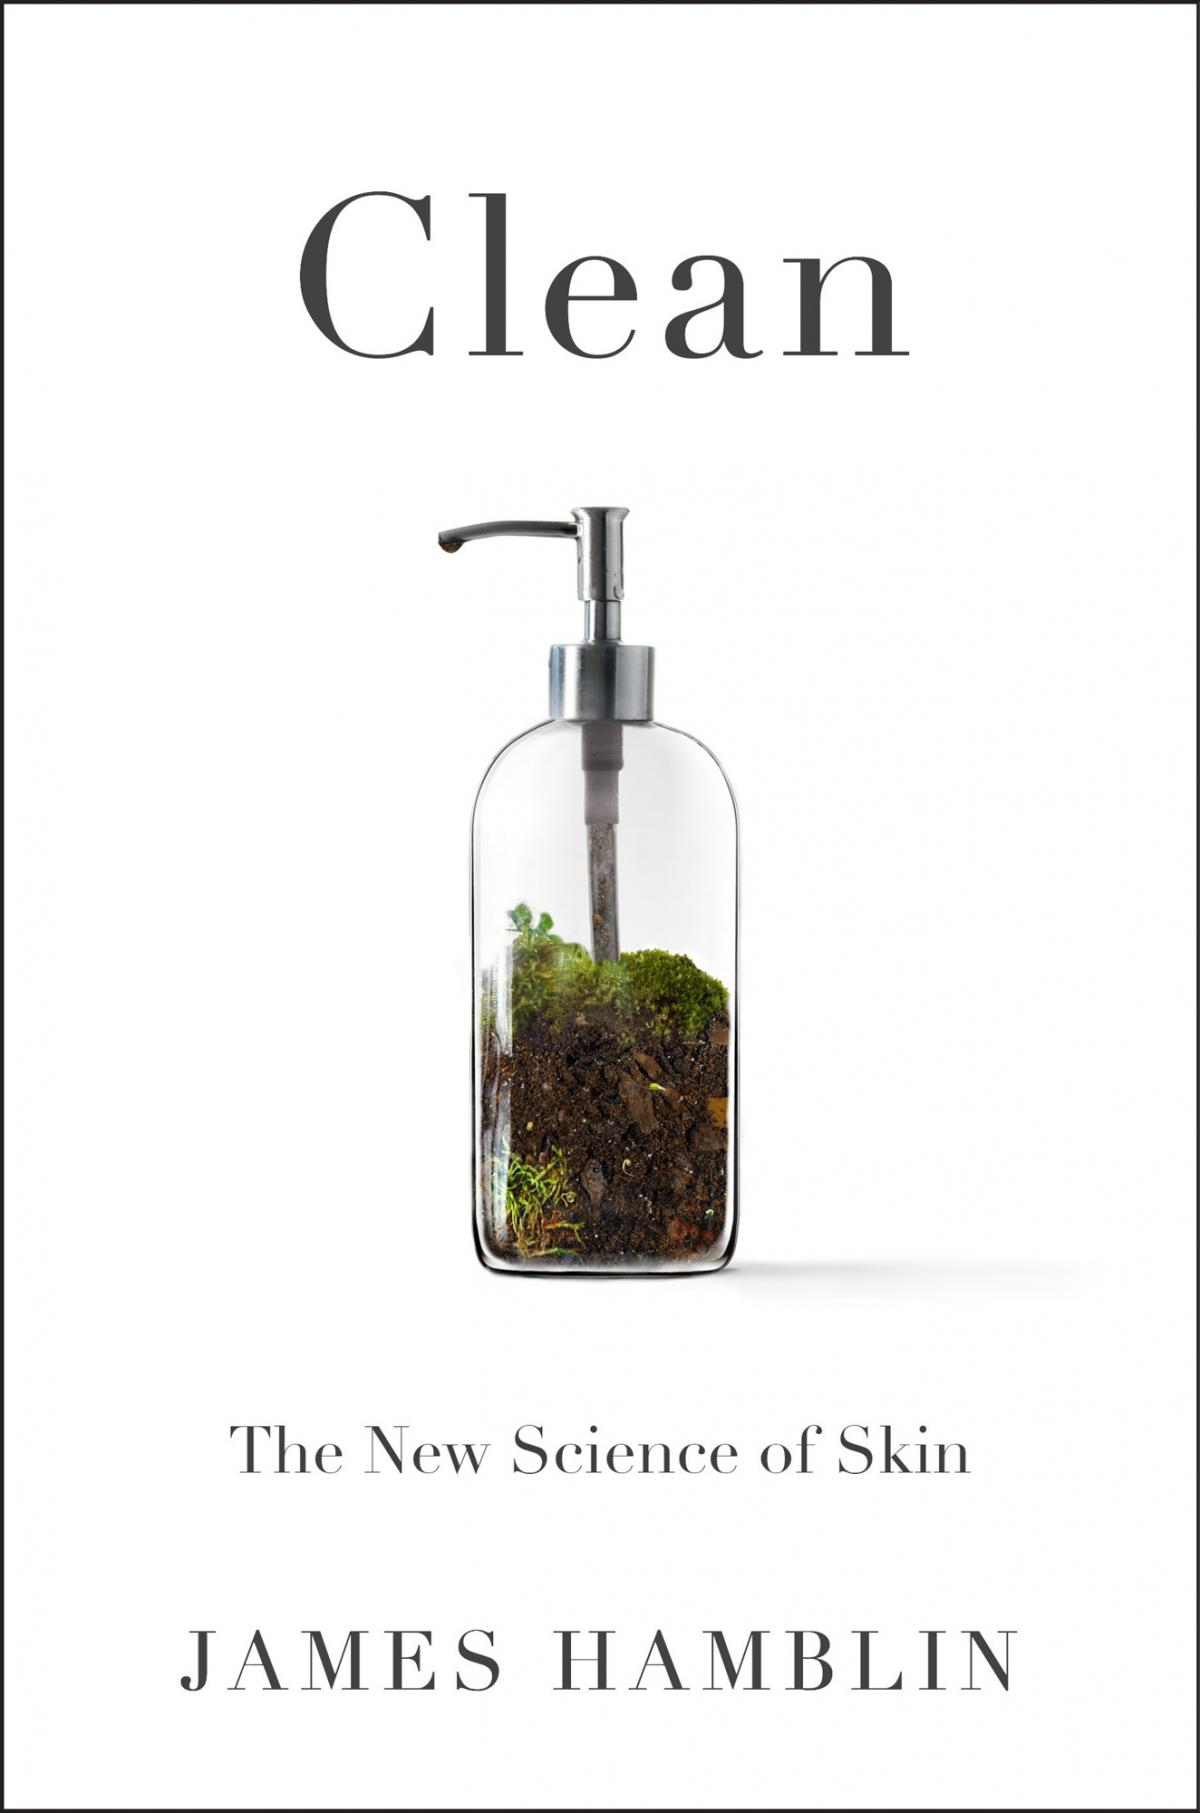 Clean The New Science of Skin, by James Hamblin.